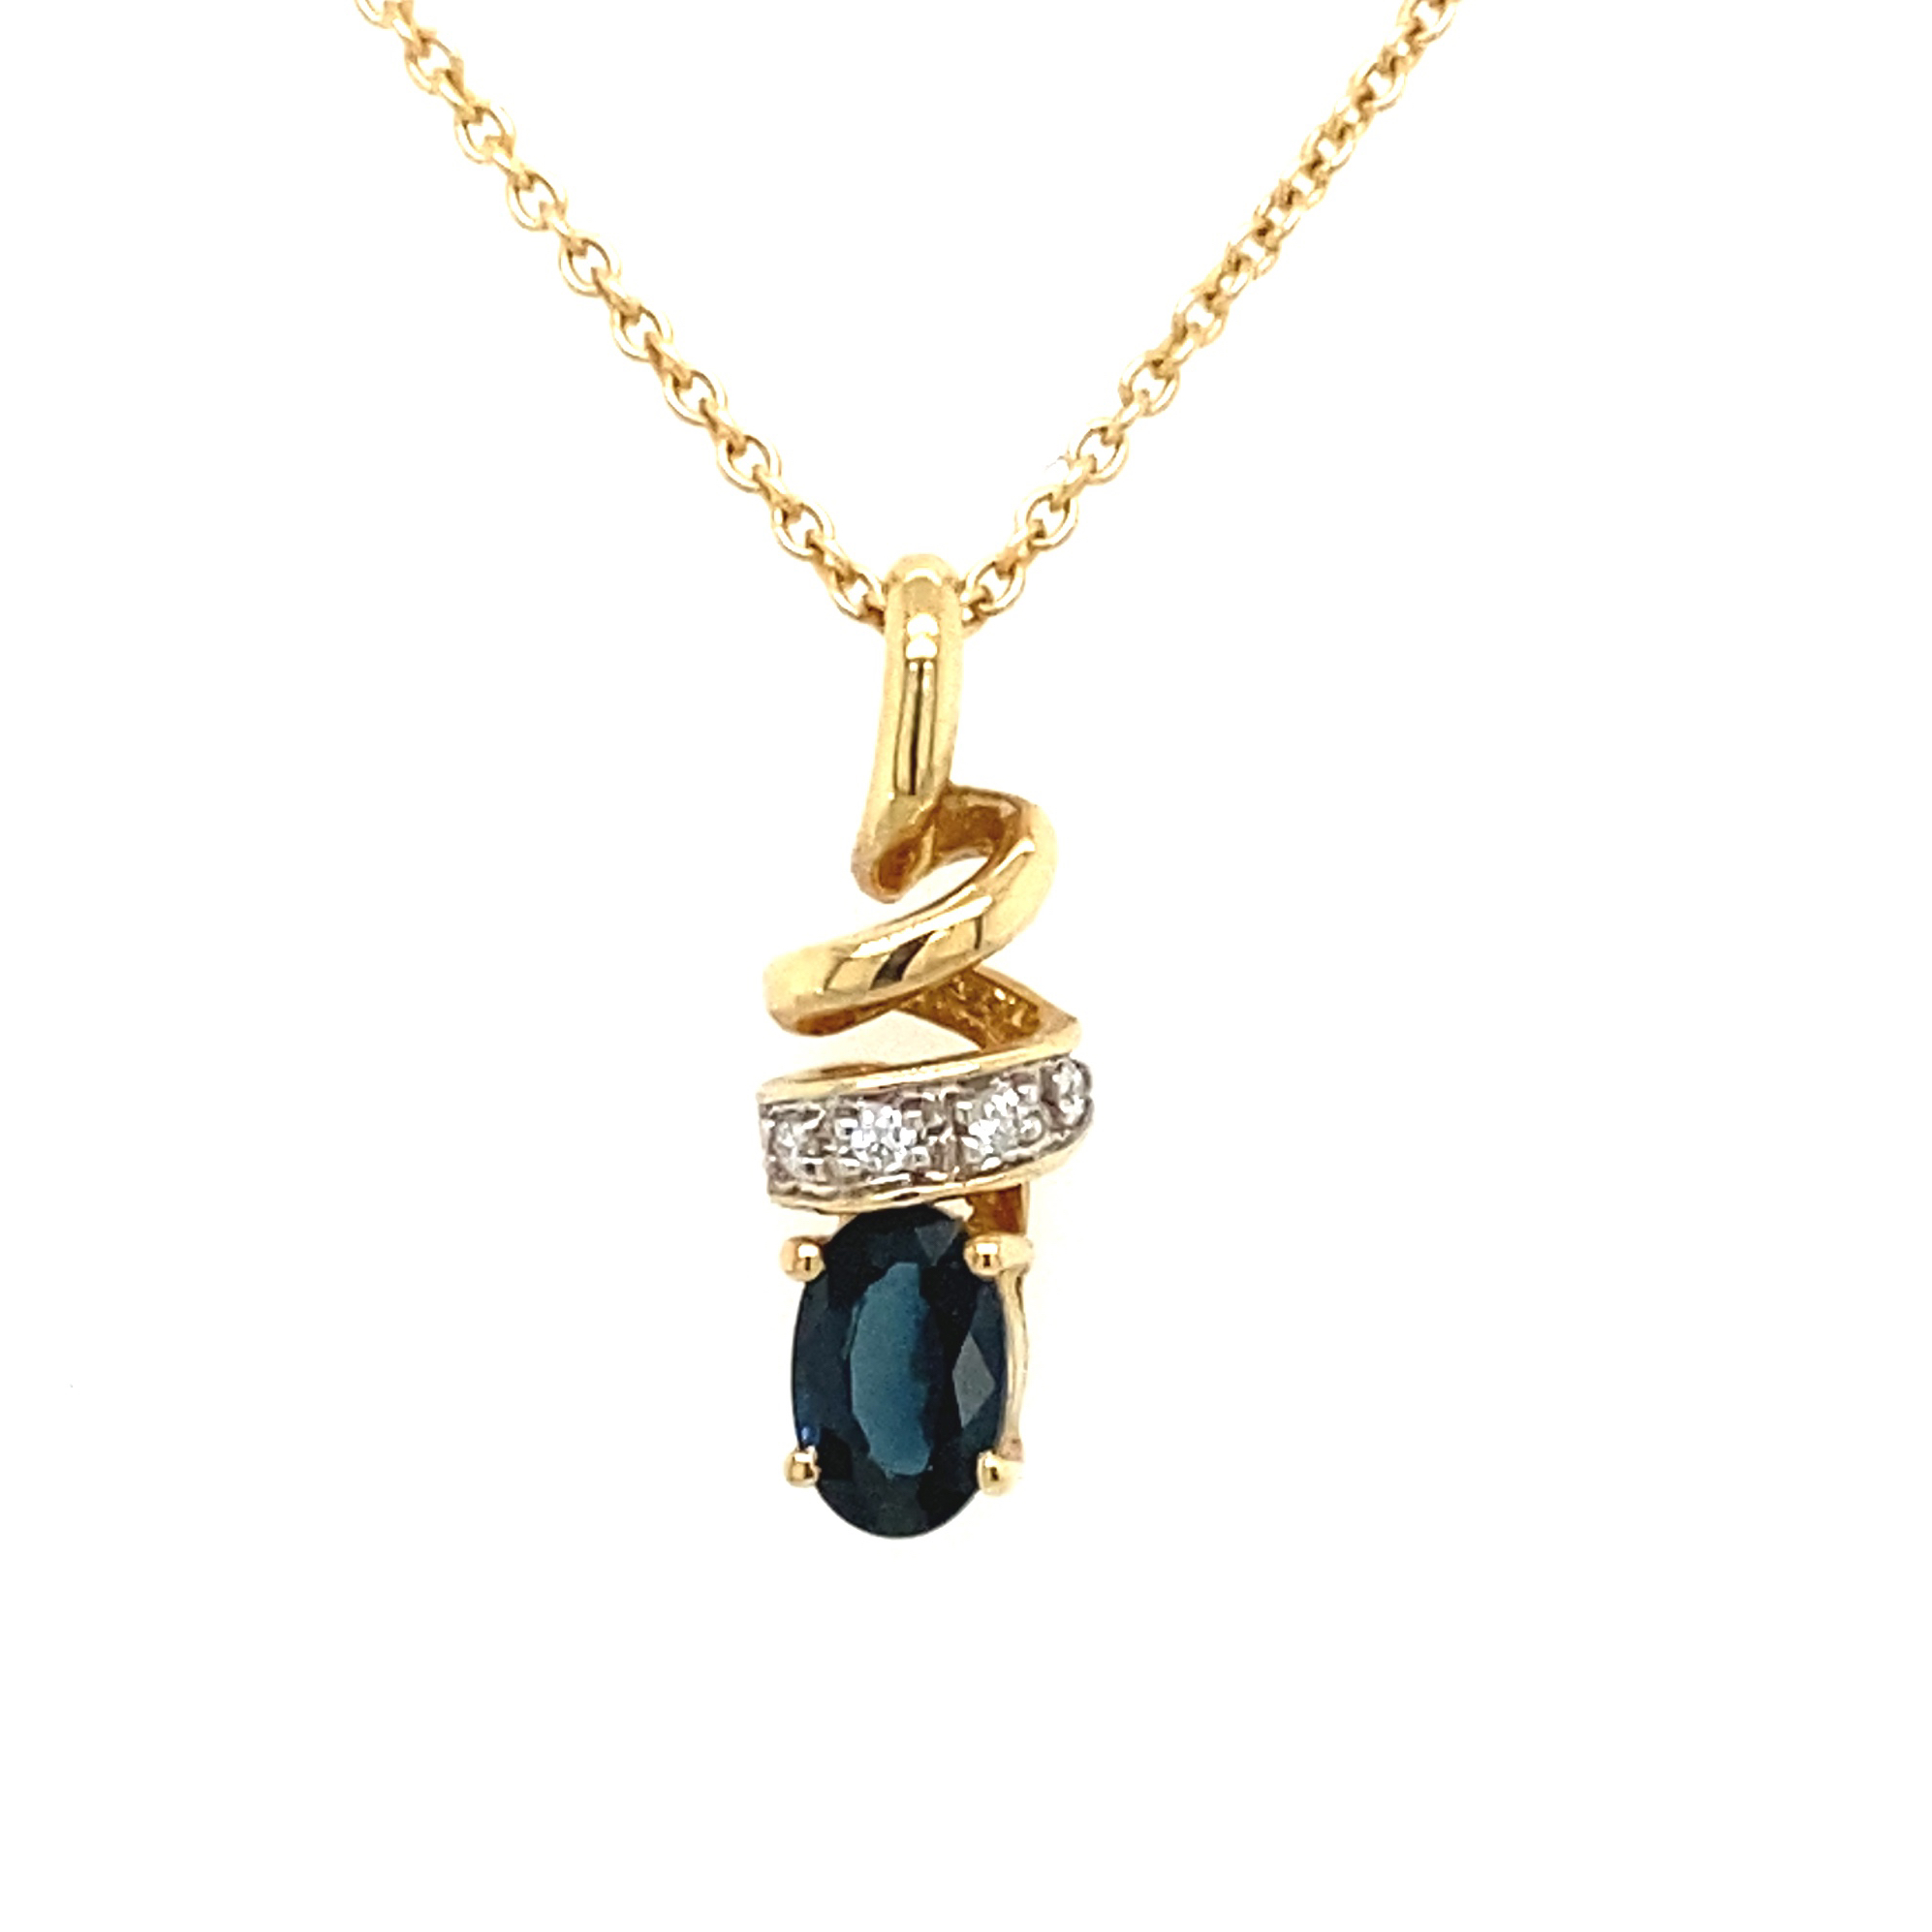 14K Yellow Gold, Blue Sapphire and Diamond Necklace